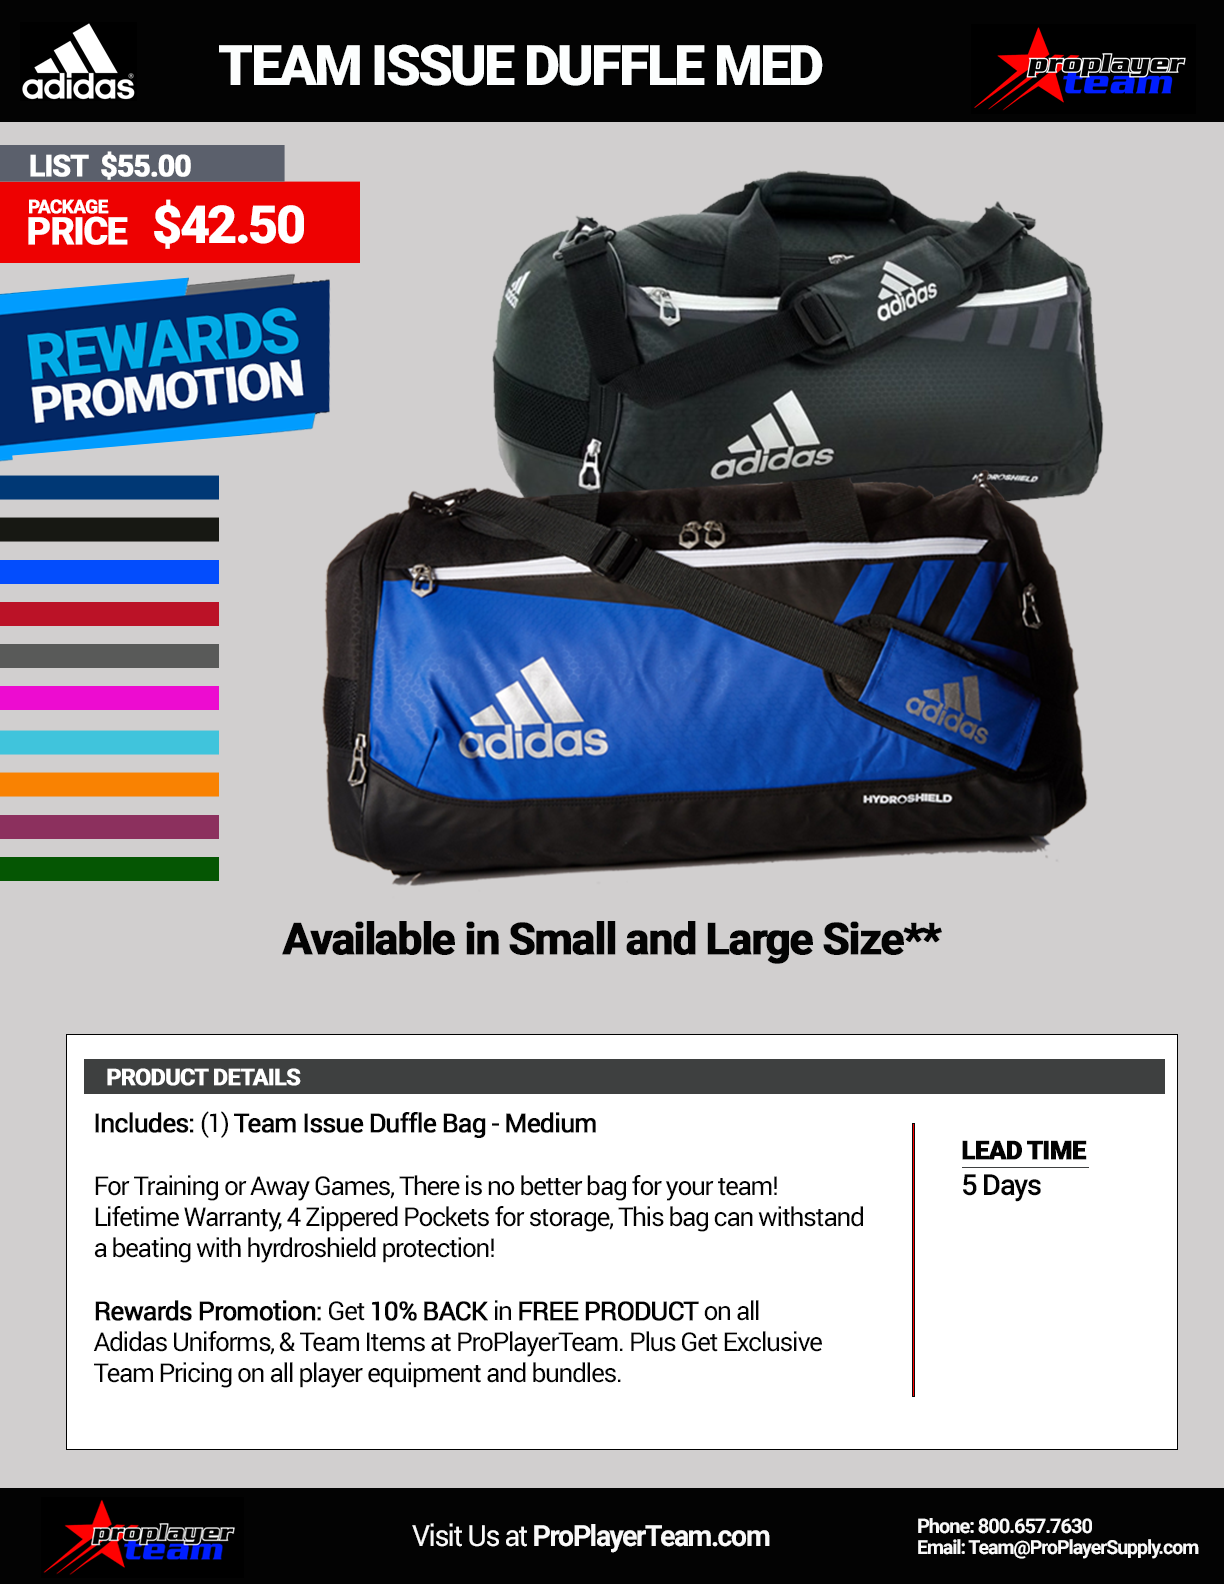 Adidas Team Issue Duffel Bag Large - Best Pictures Of Adidas ... 27d13f2a21d8d